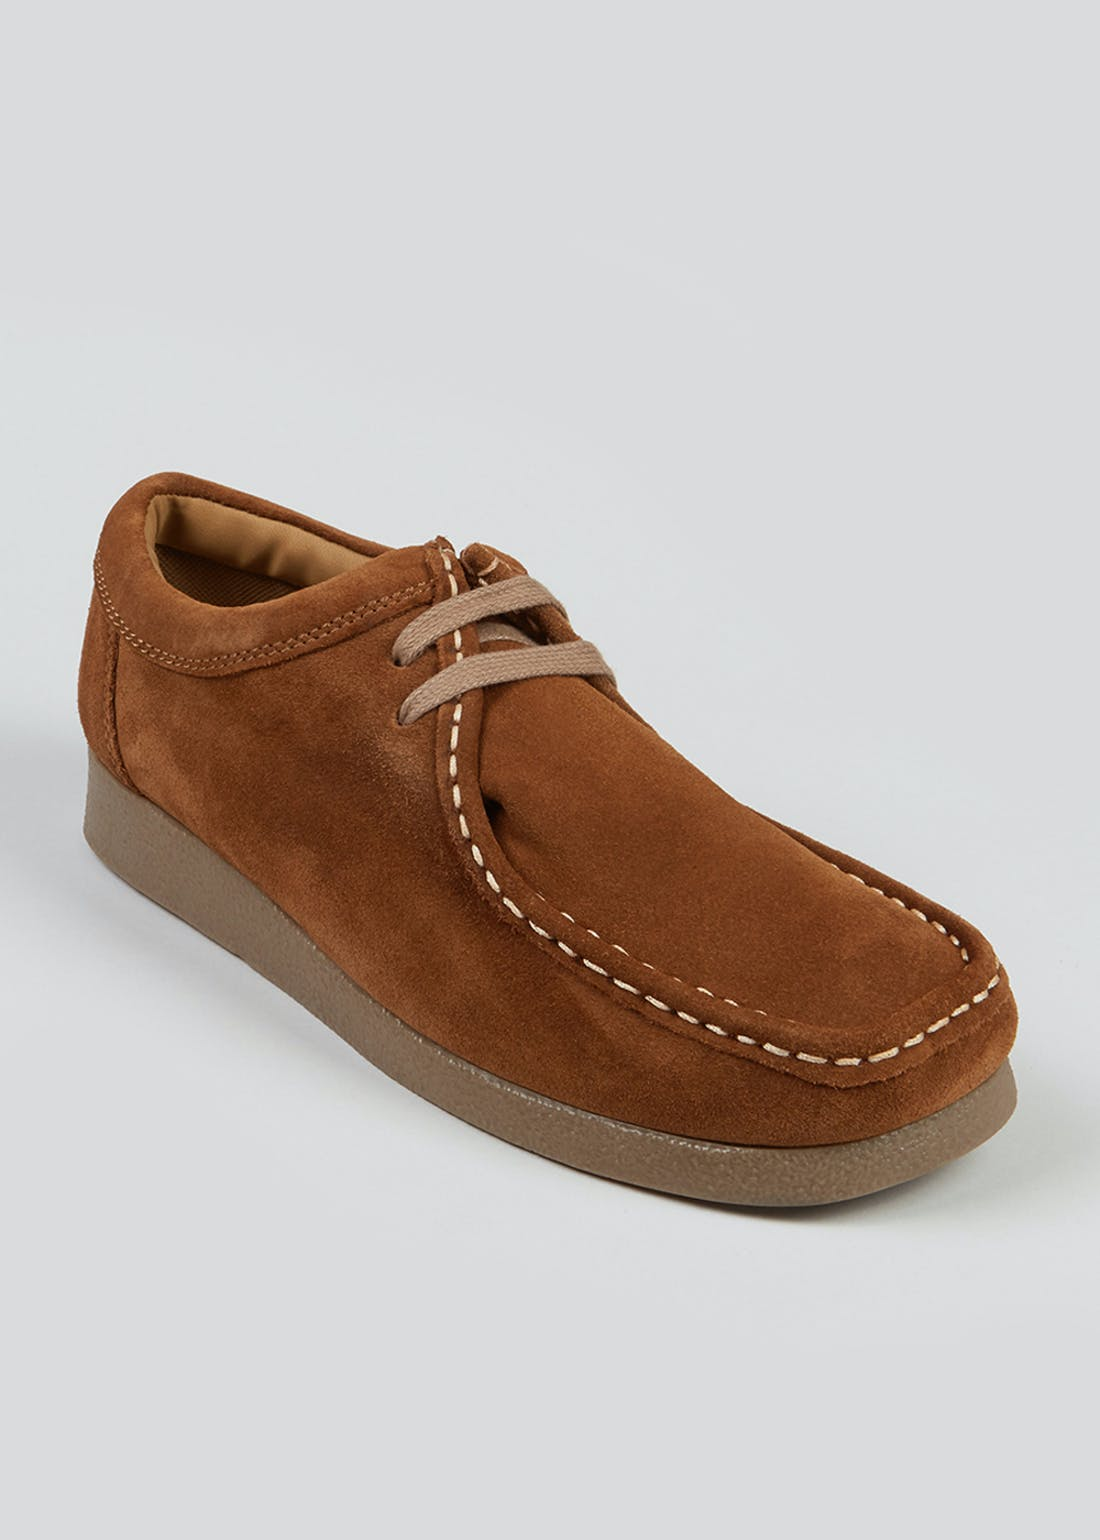 Brown Suede Lace Up Shoes